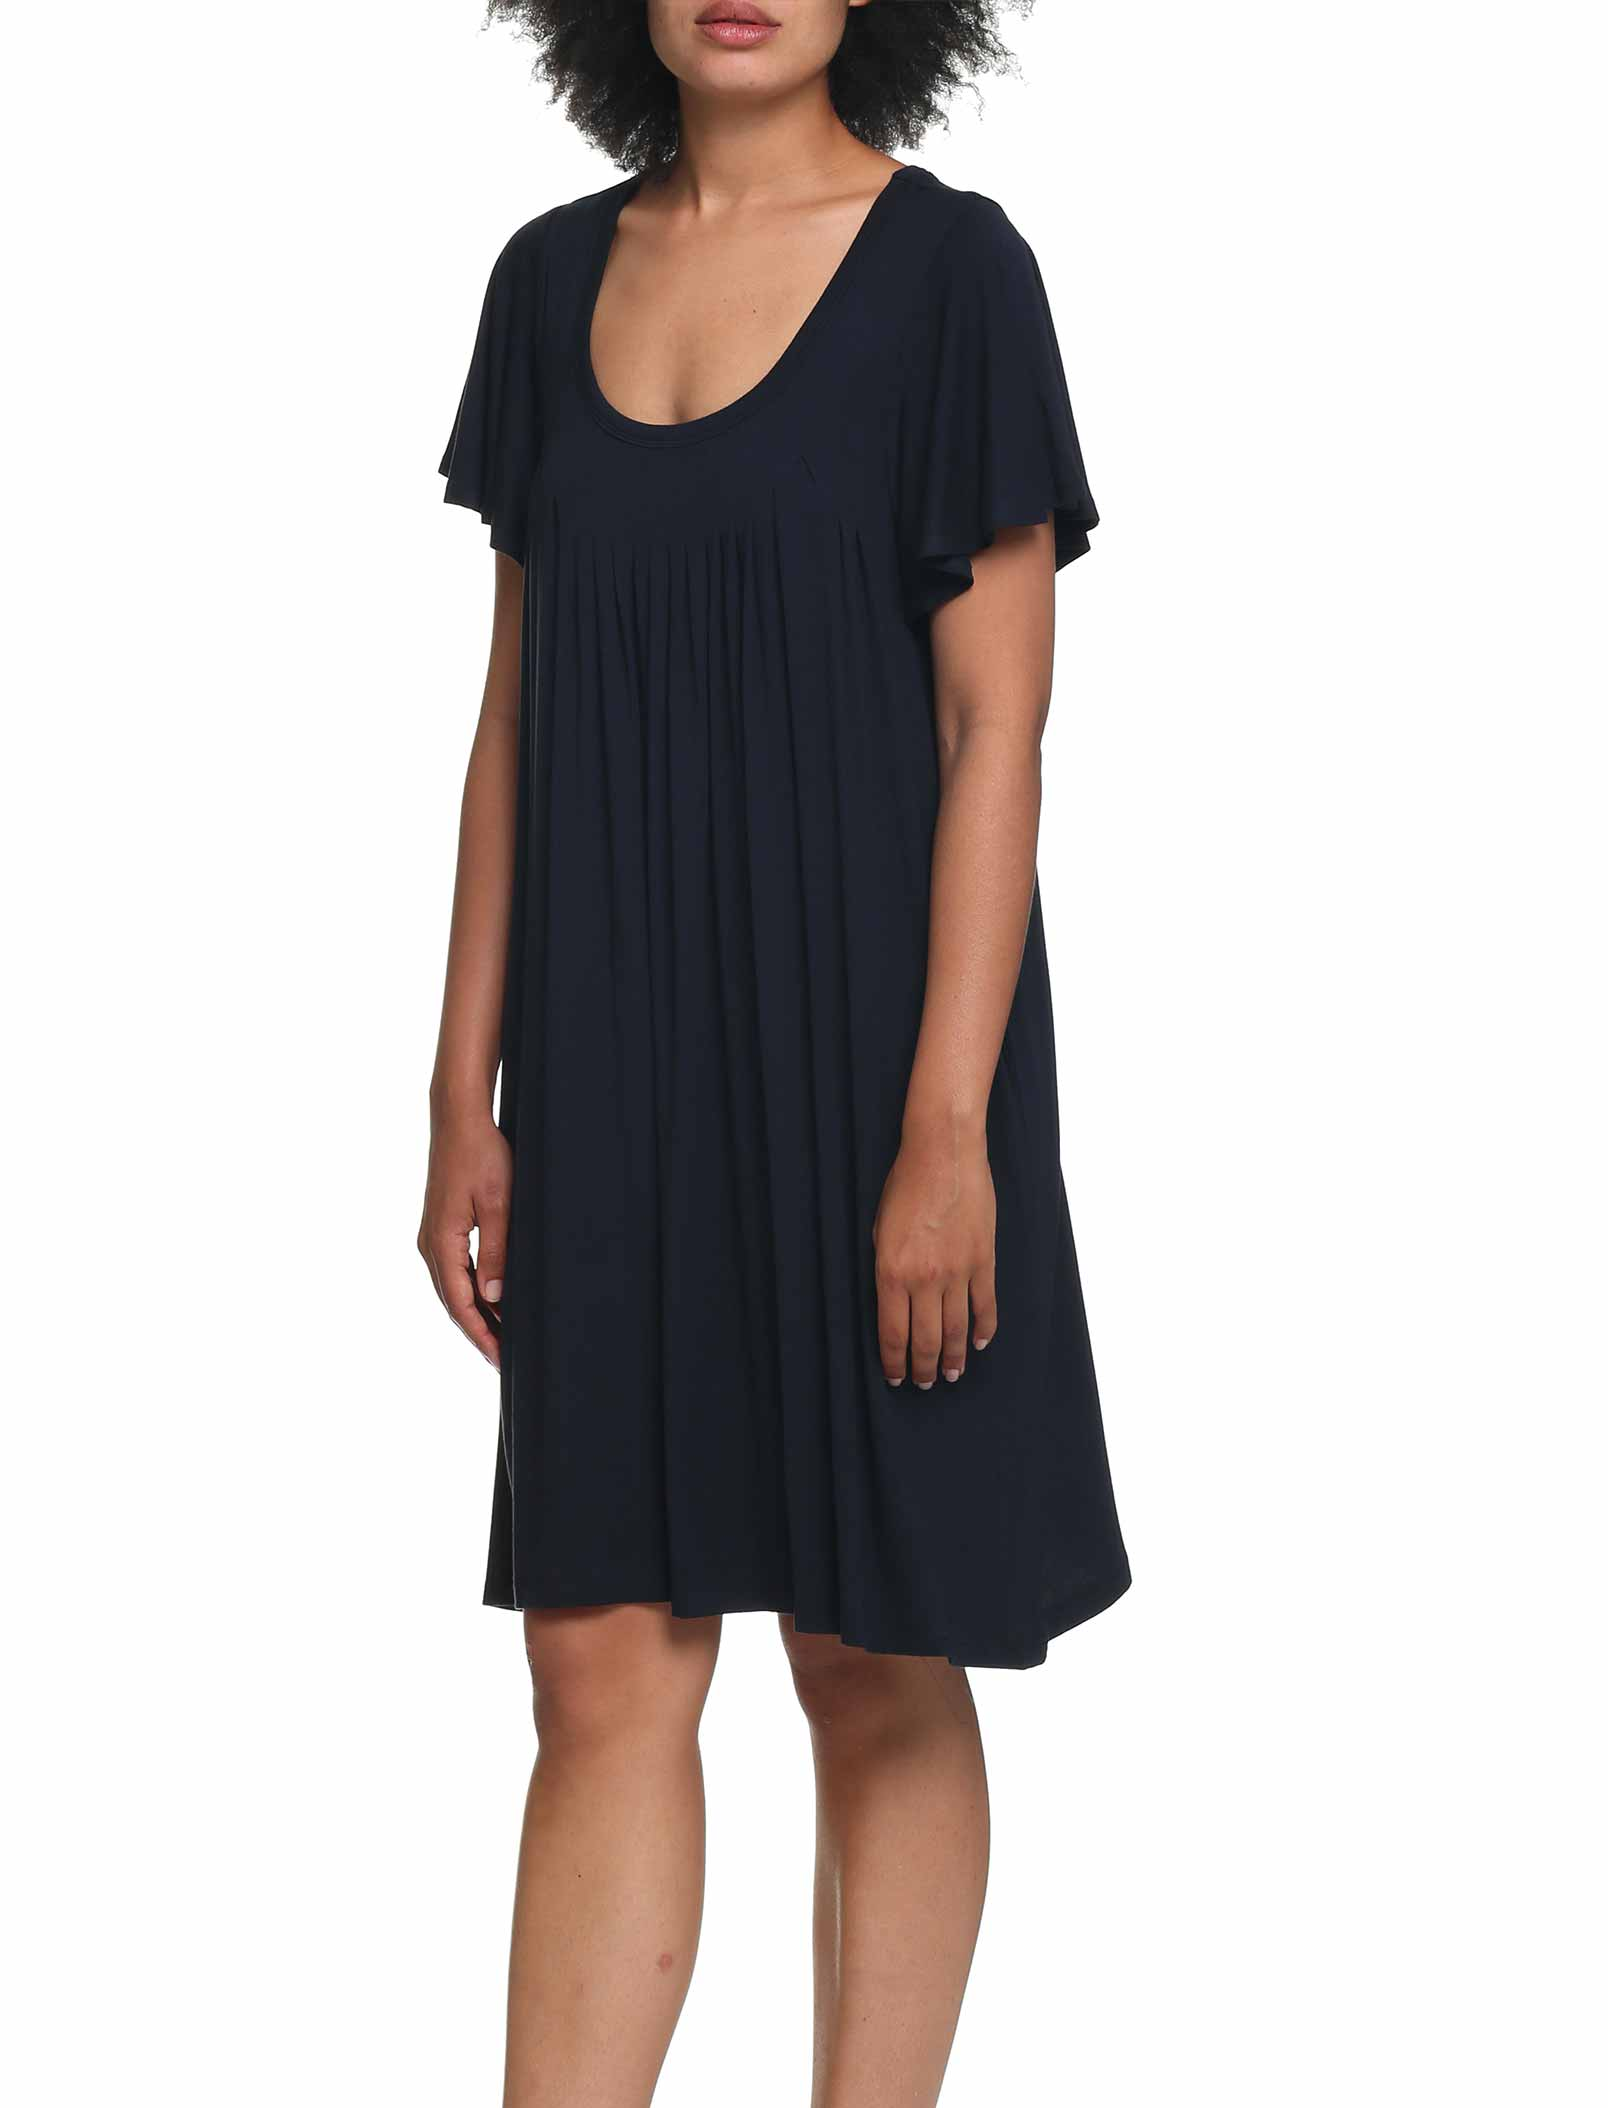 Modal Soft Flutter Nightgown in Black